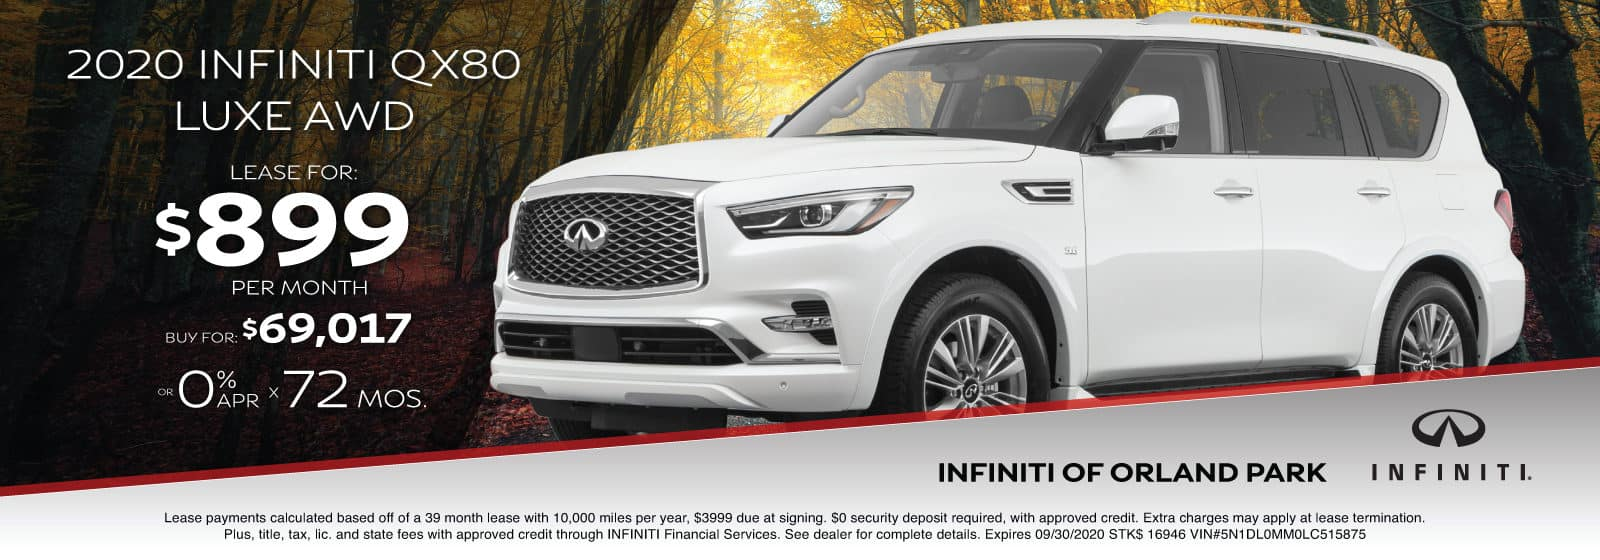 Lease a new QX80 for $899/month